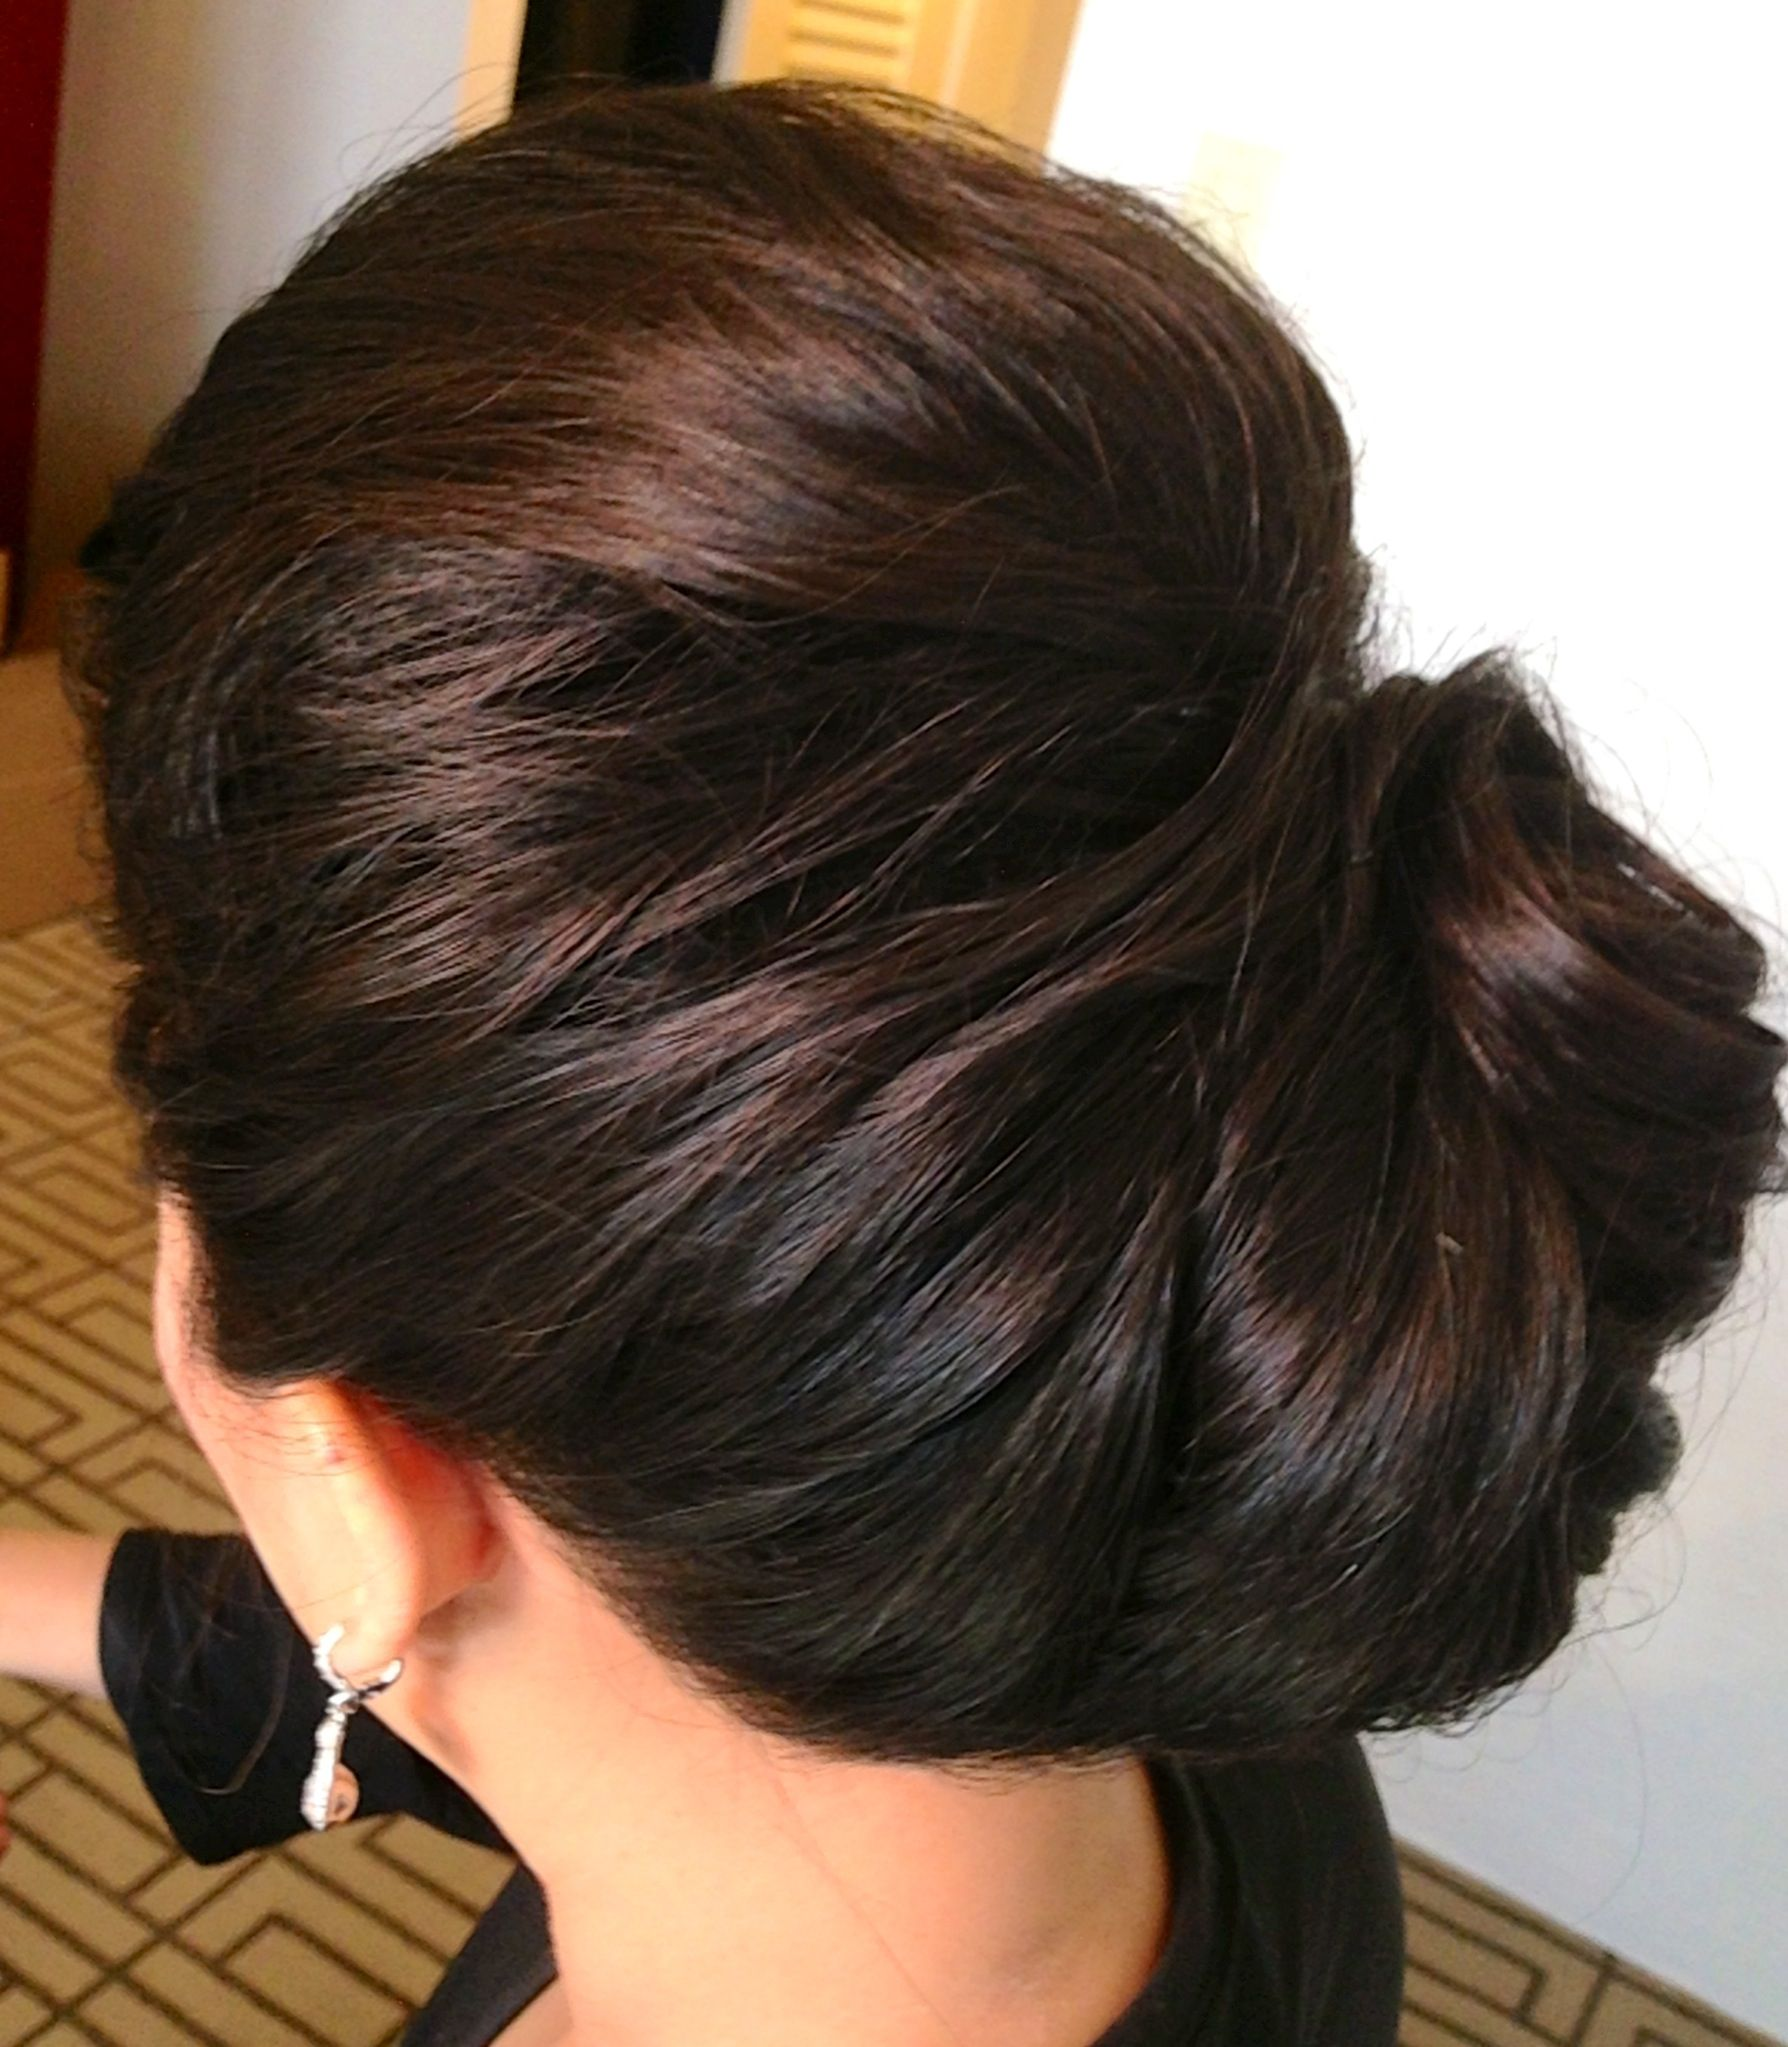 Wedding updo wedding hair updo classic updo chignon french